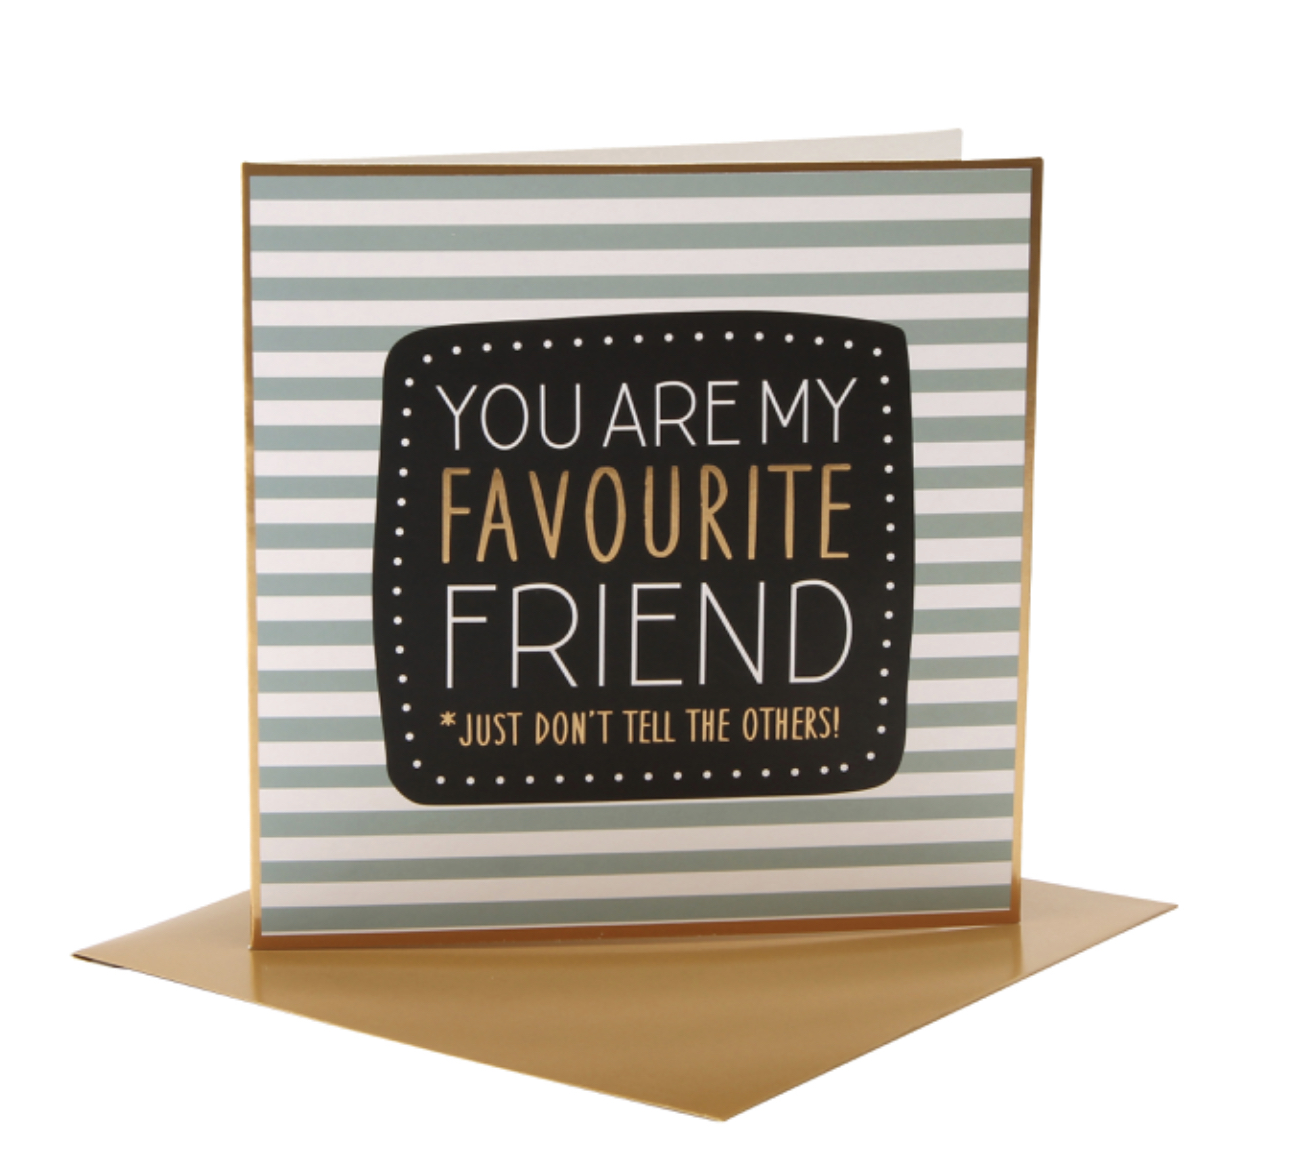 You are my favourite friend, just don't tell the others. Card